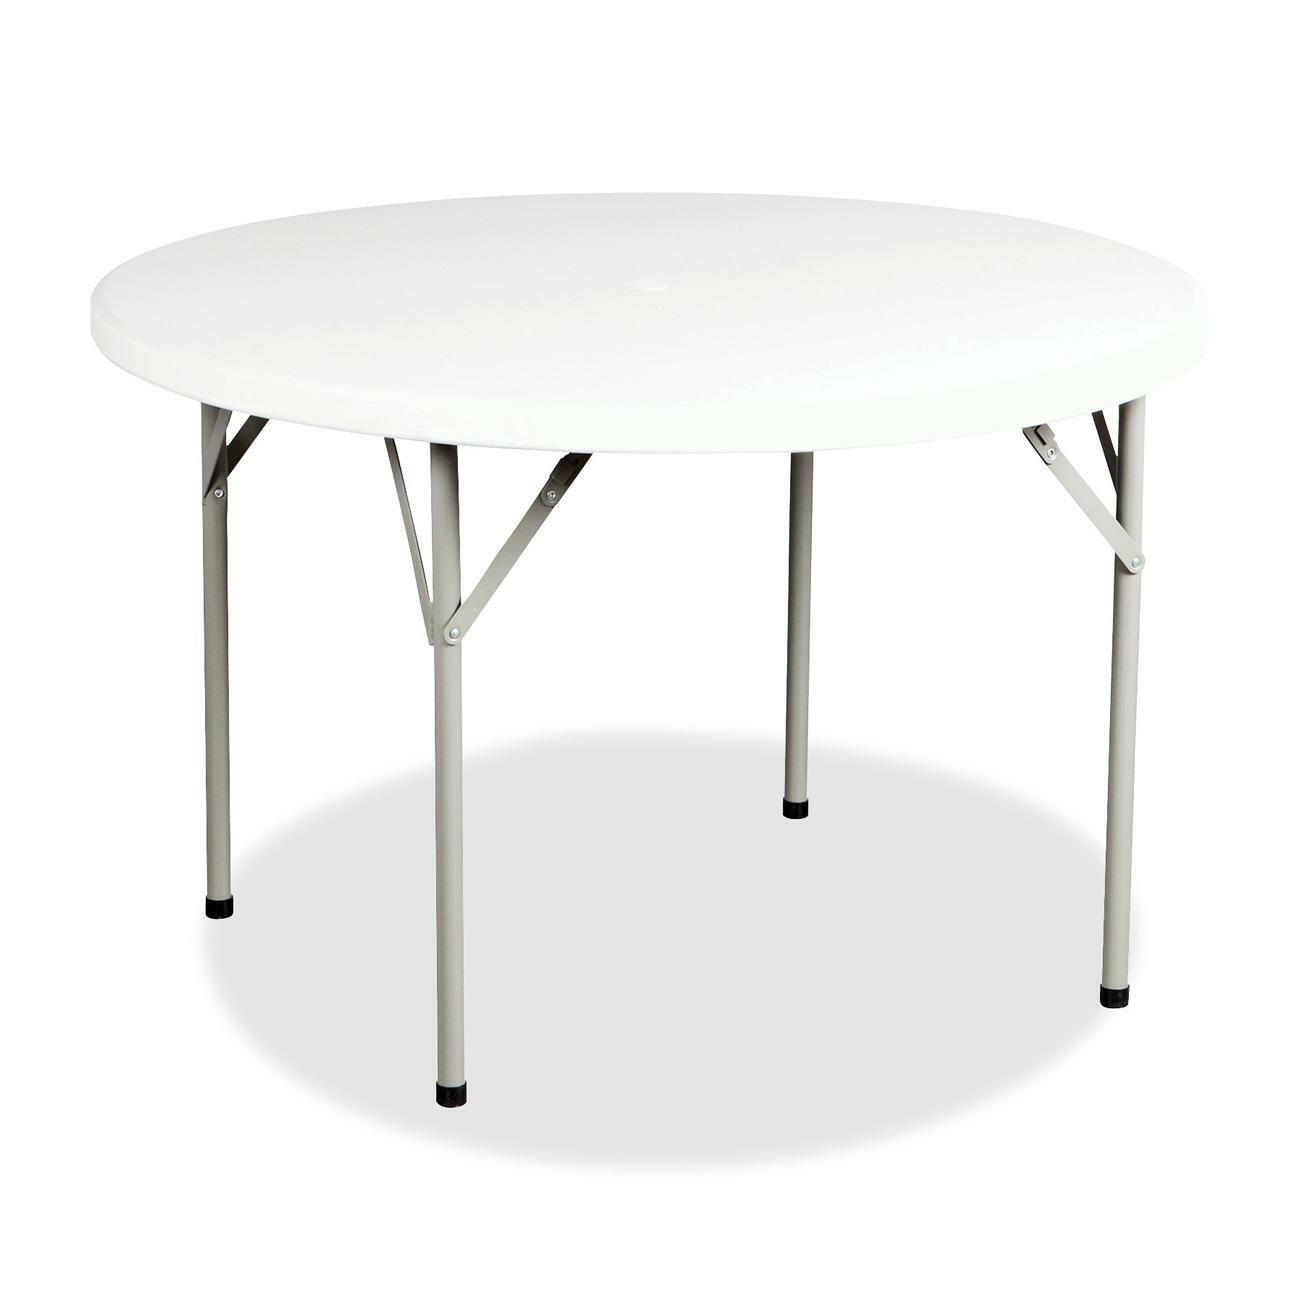 Table Polypropylène Heartwood Lightweight Polypropylene Round Folding Table Round Top X 60